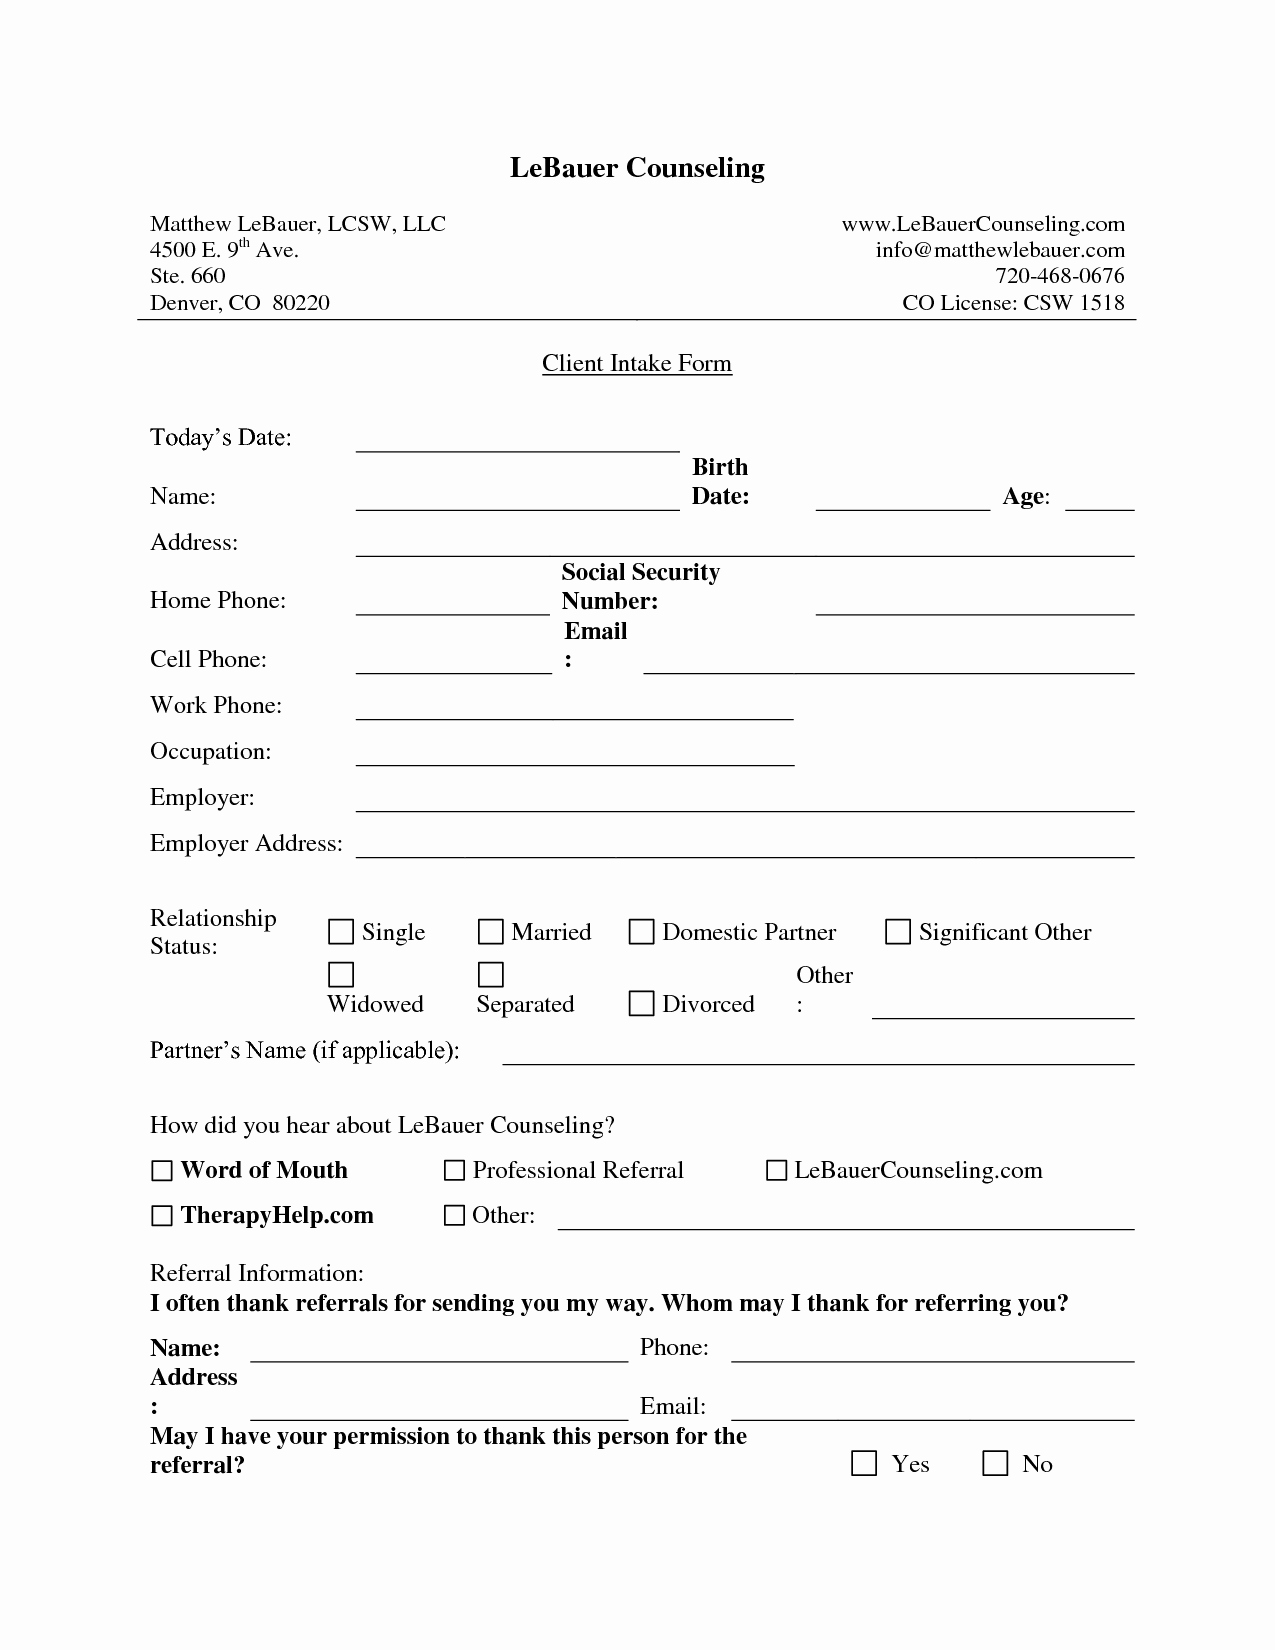 New Client Intake form Template Fogiid Clipart Kid